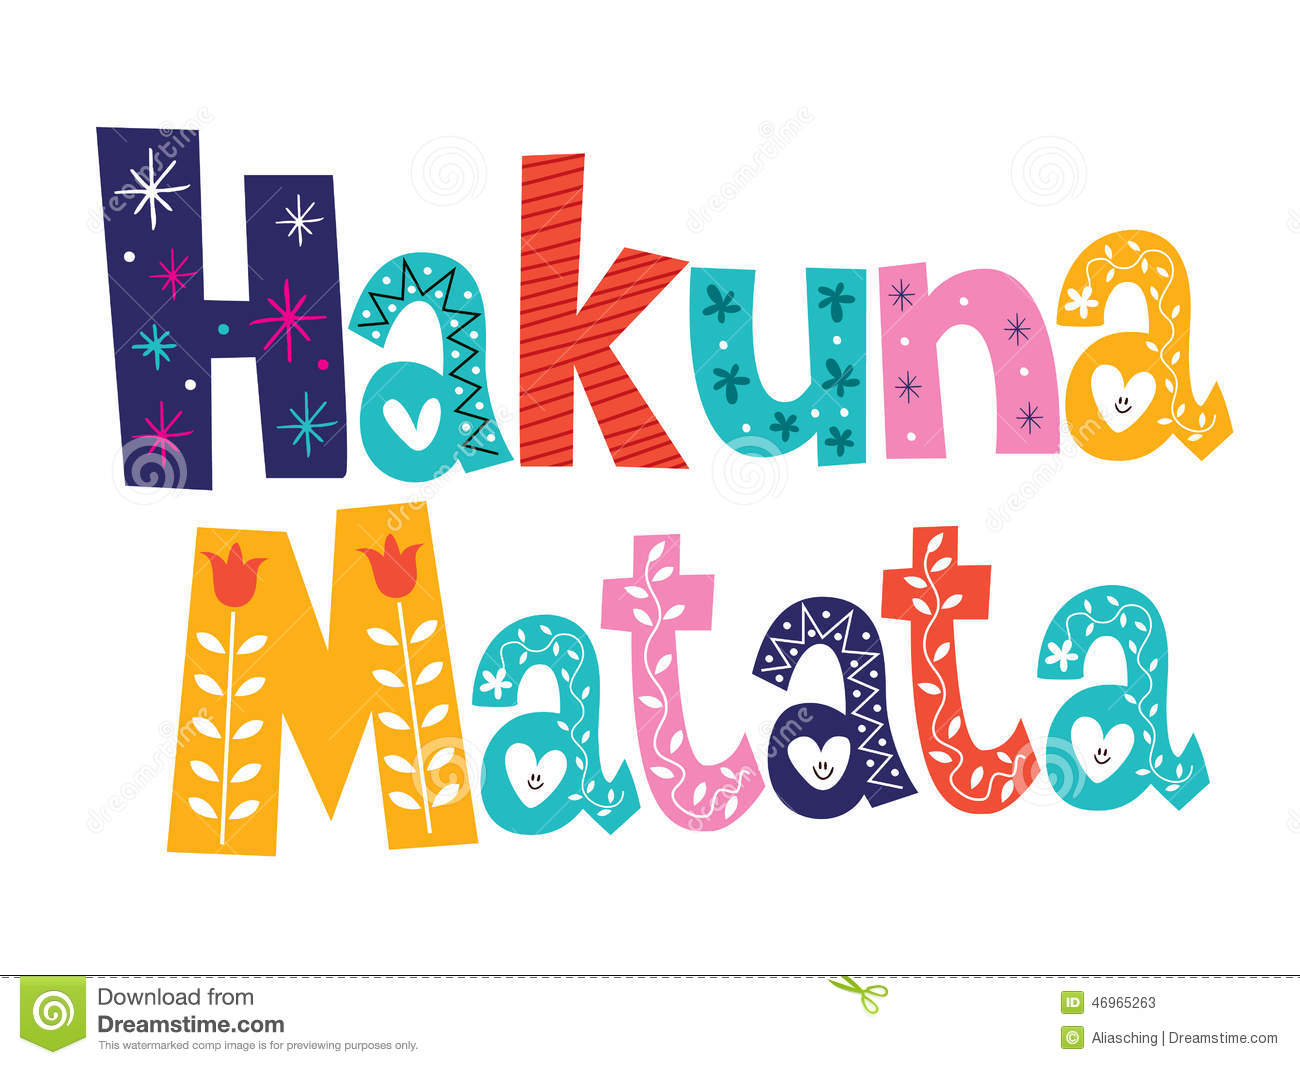 hakuna matata wallpaper download